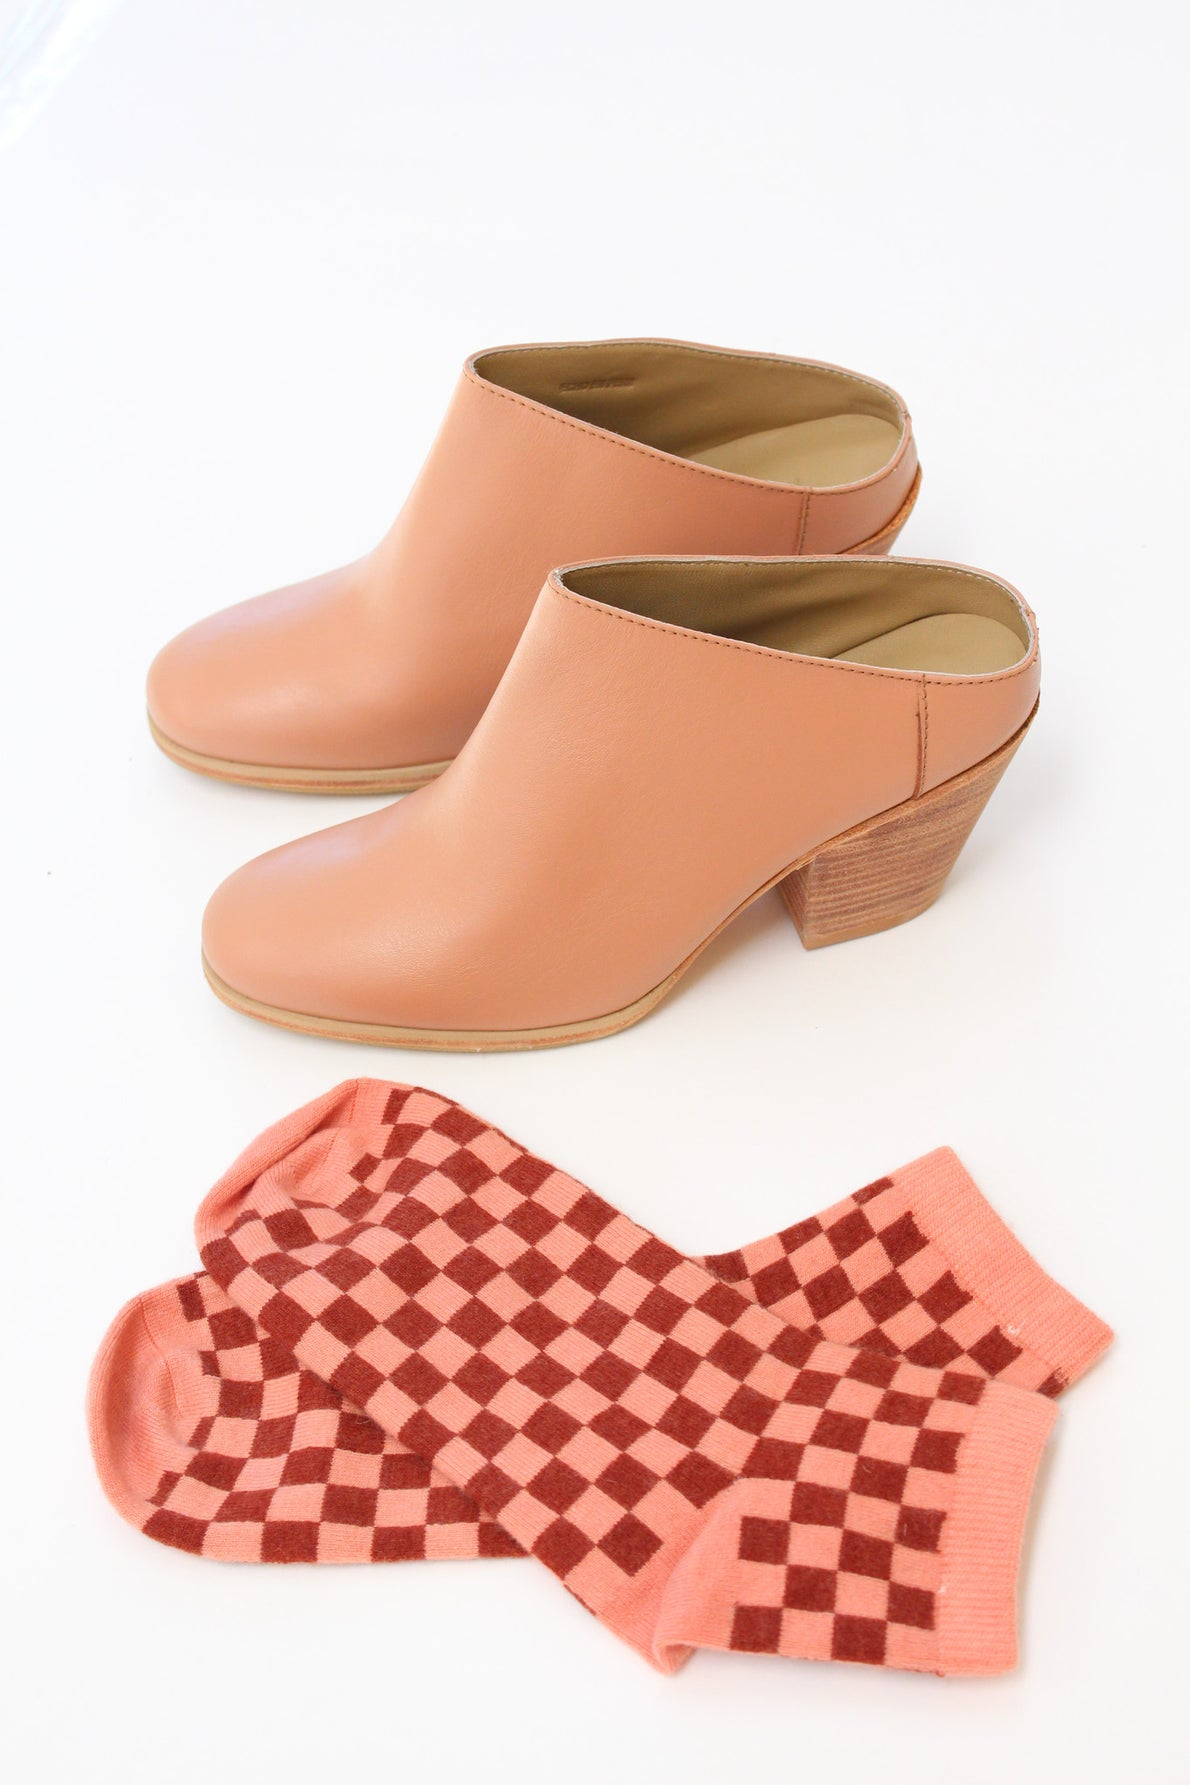 Beklina Cashmere Socks Checkerboard